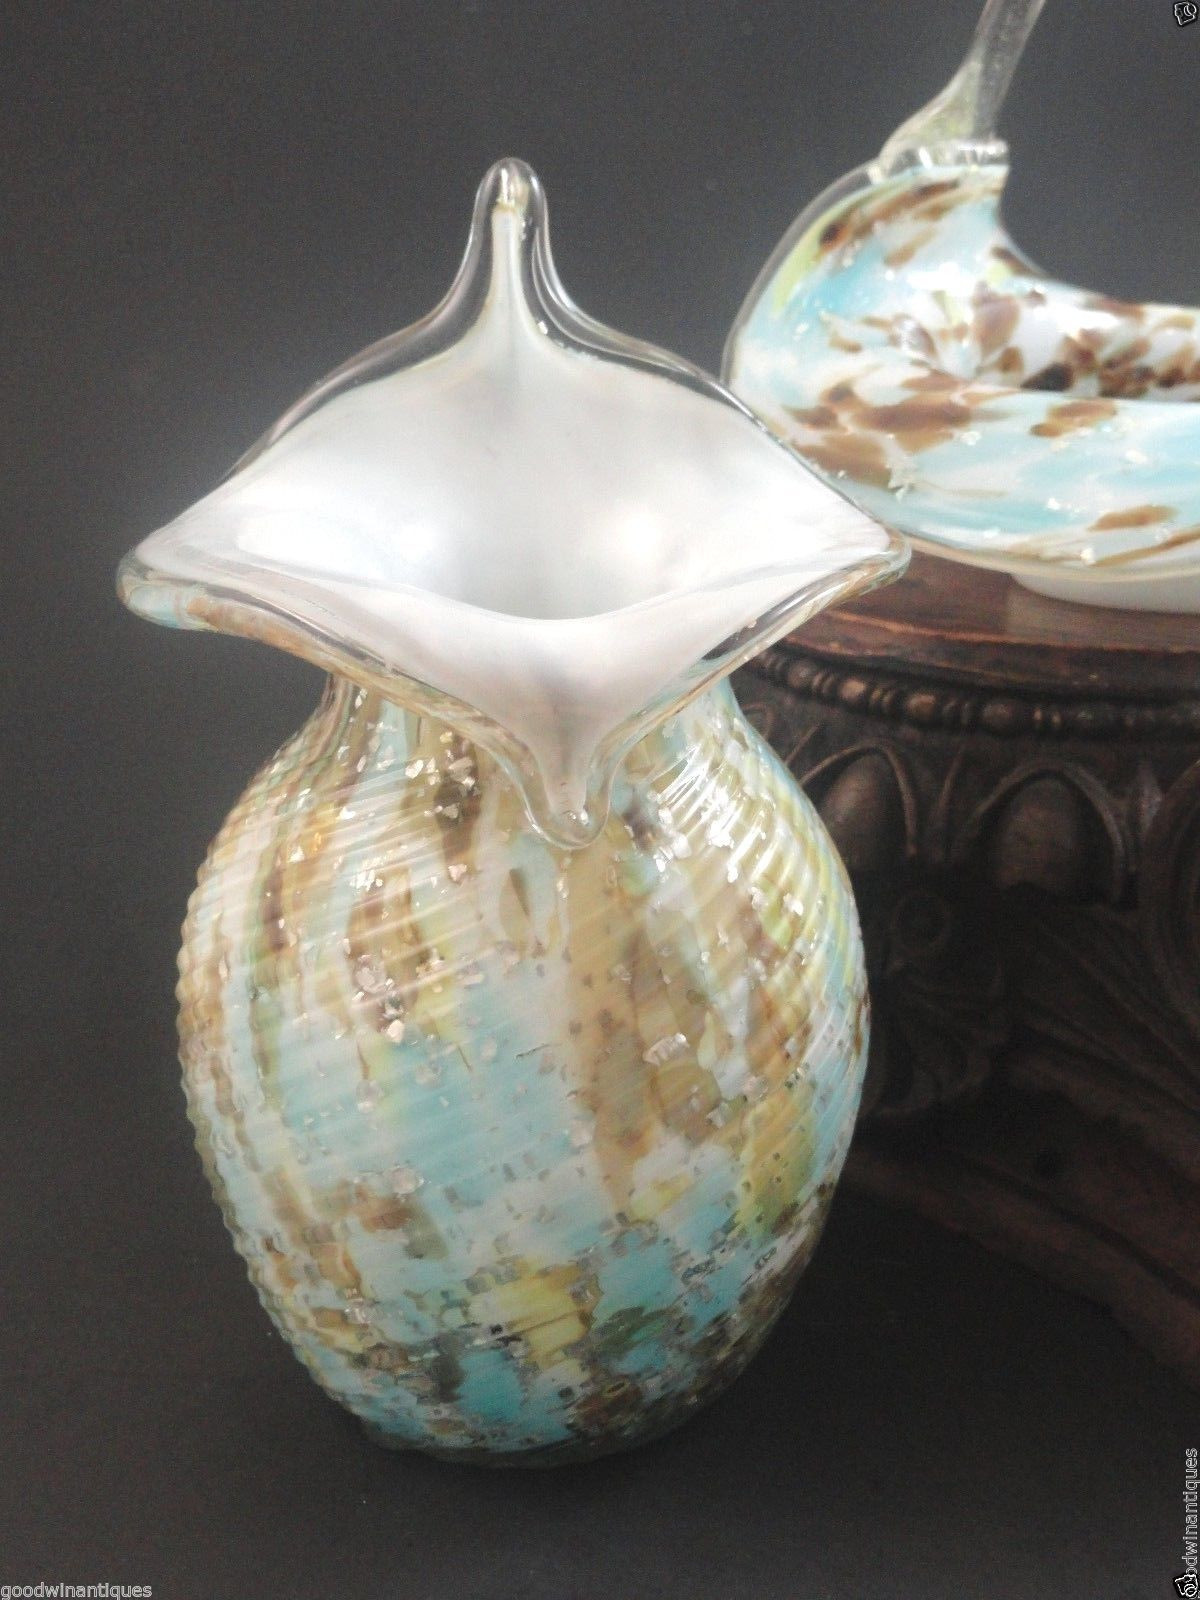 bohemian cut glass vase of antique bohemian harrach spatter mica spangle art glass jack in regarding antique bohemian harrach spatter mica spangle art glass jack in pulpit jip vase ebay